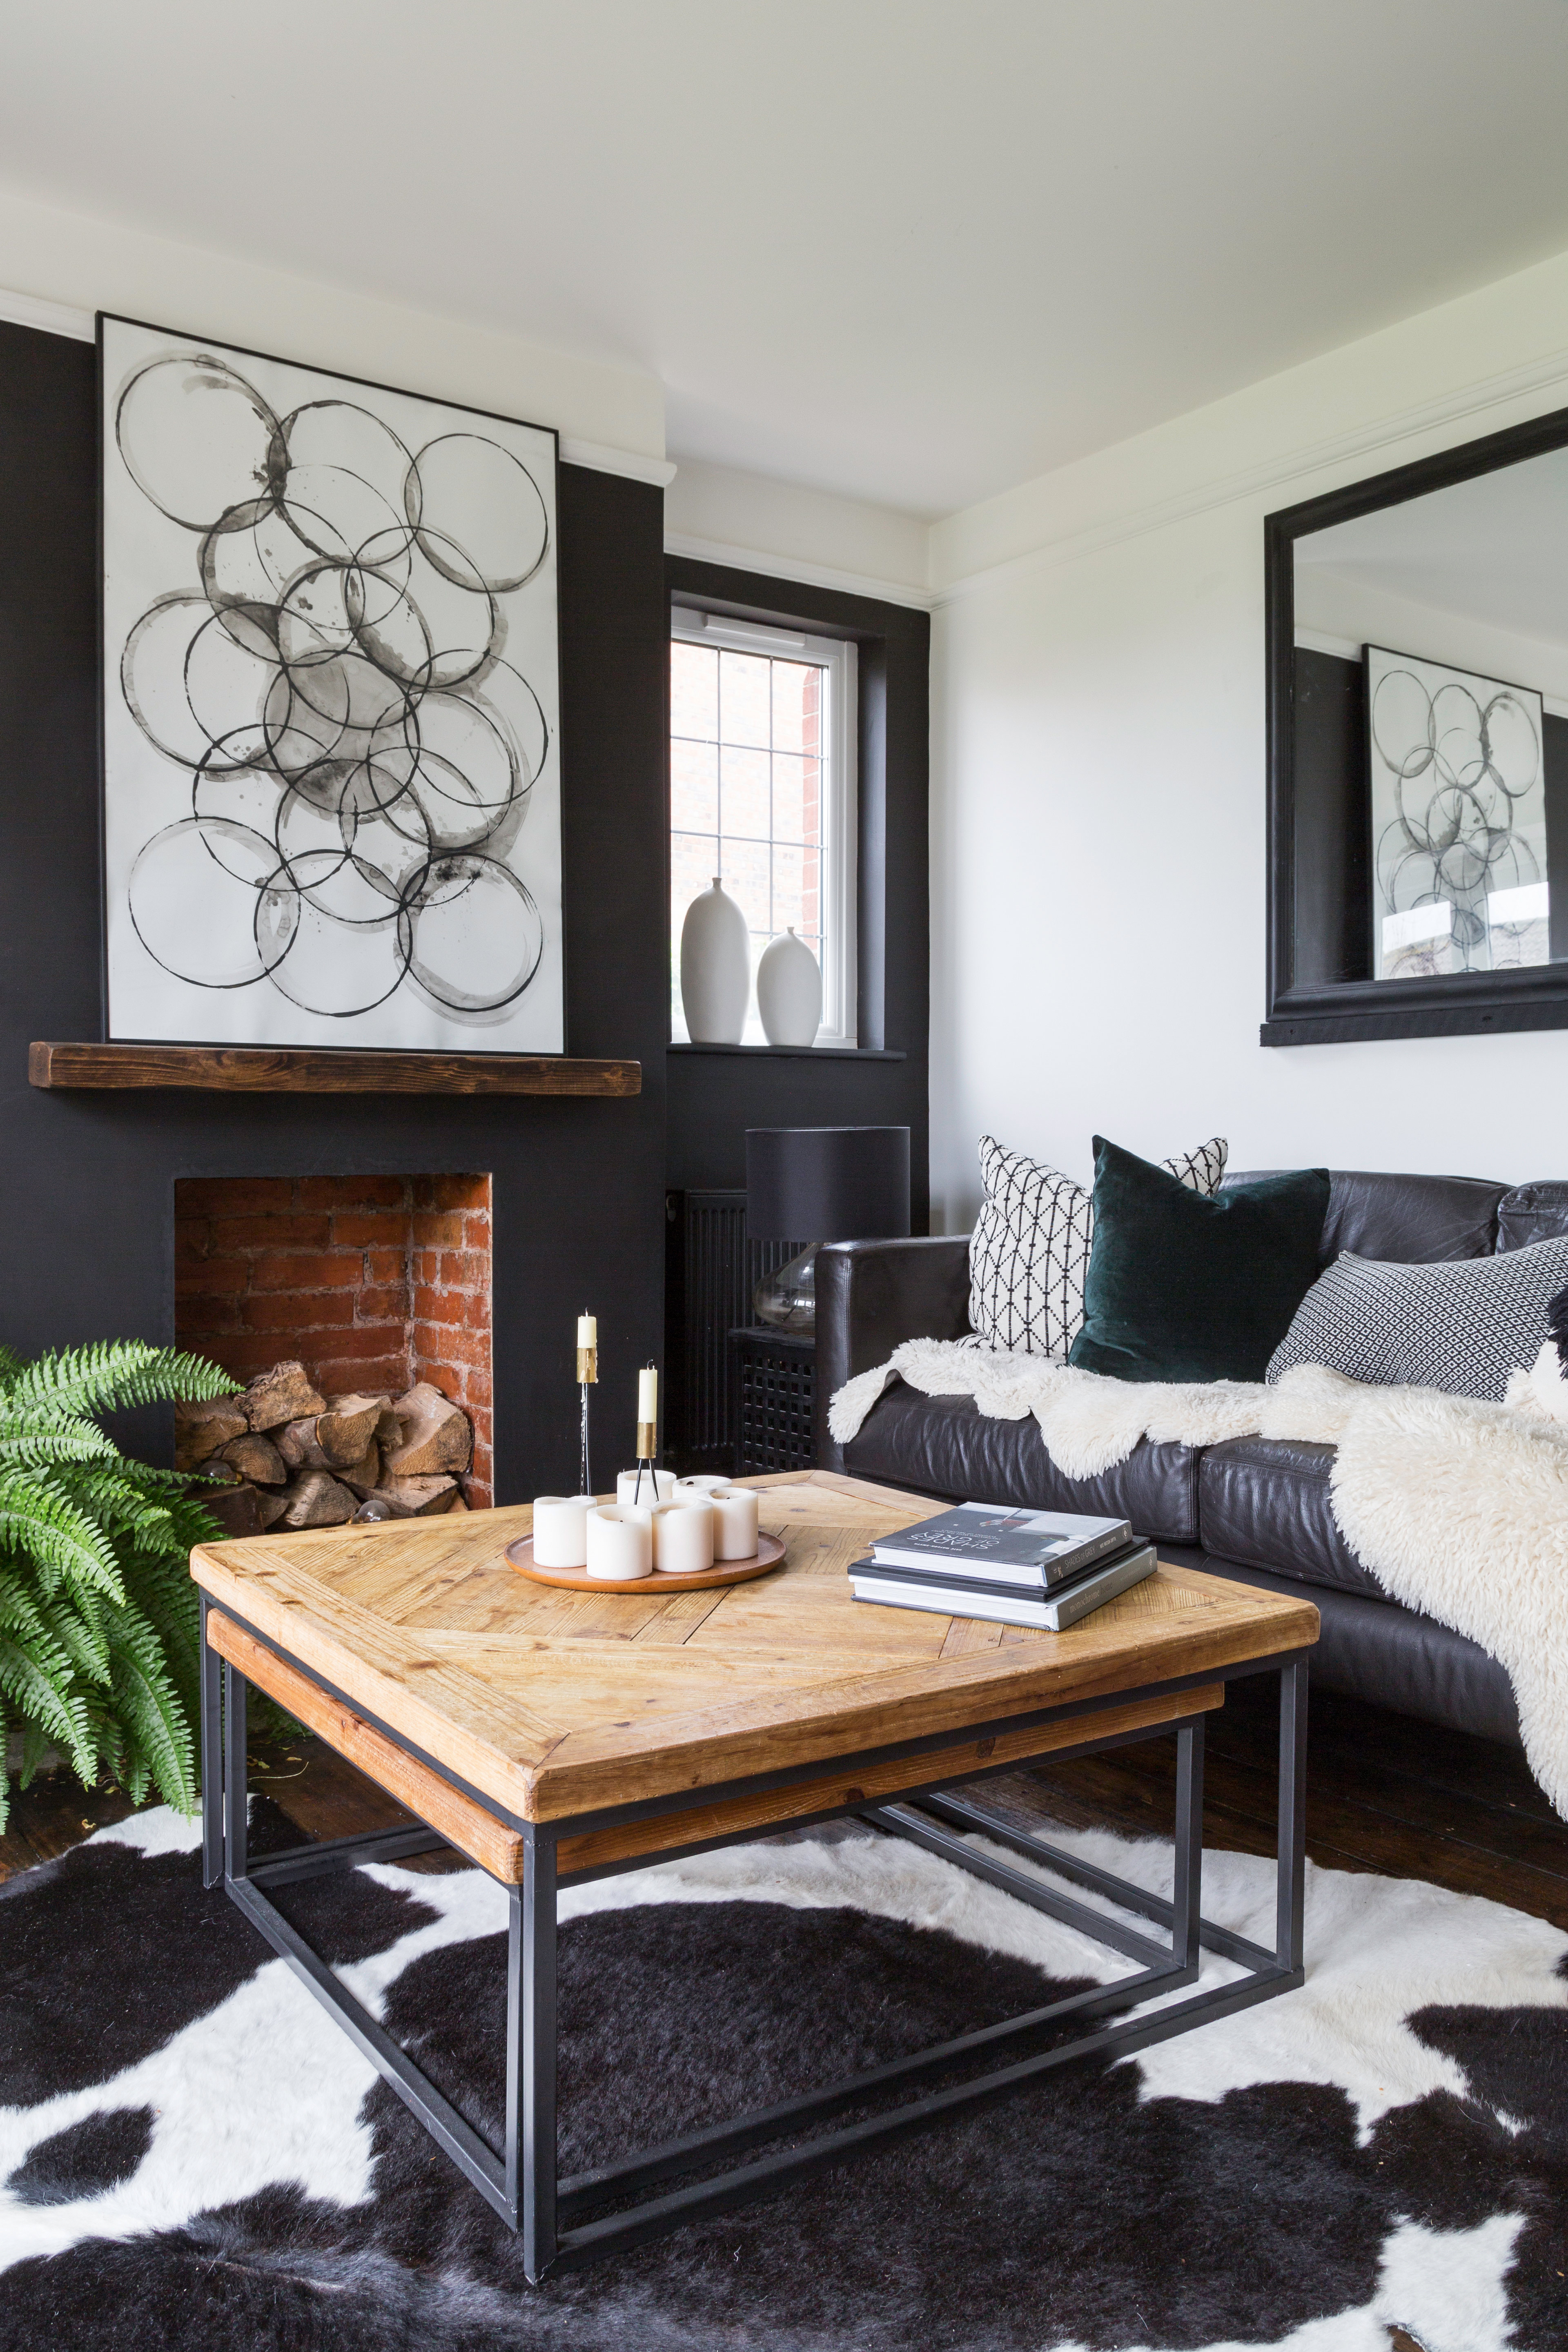 16 Black Living Room Ideas To Tempt You Over The Dark Side Real Homes